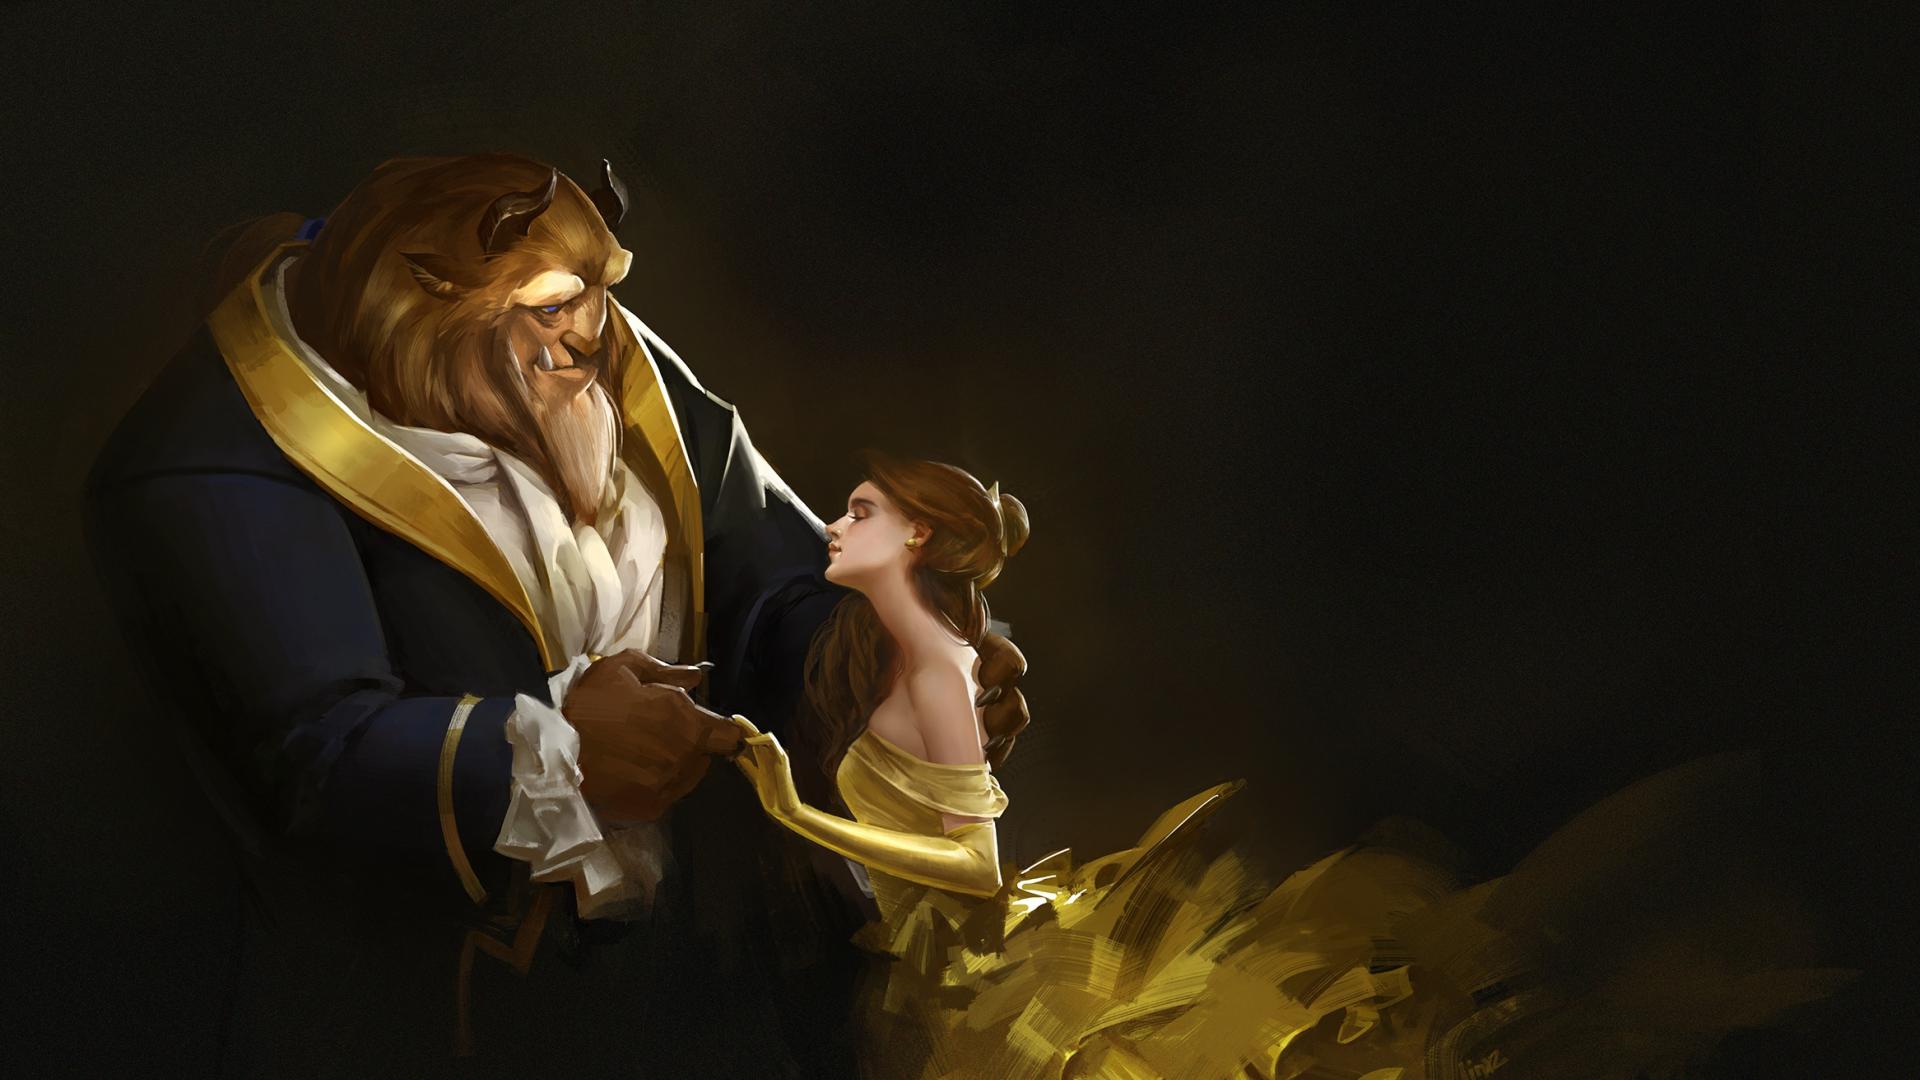 beauty and the beast 2017 download 1080p